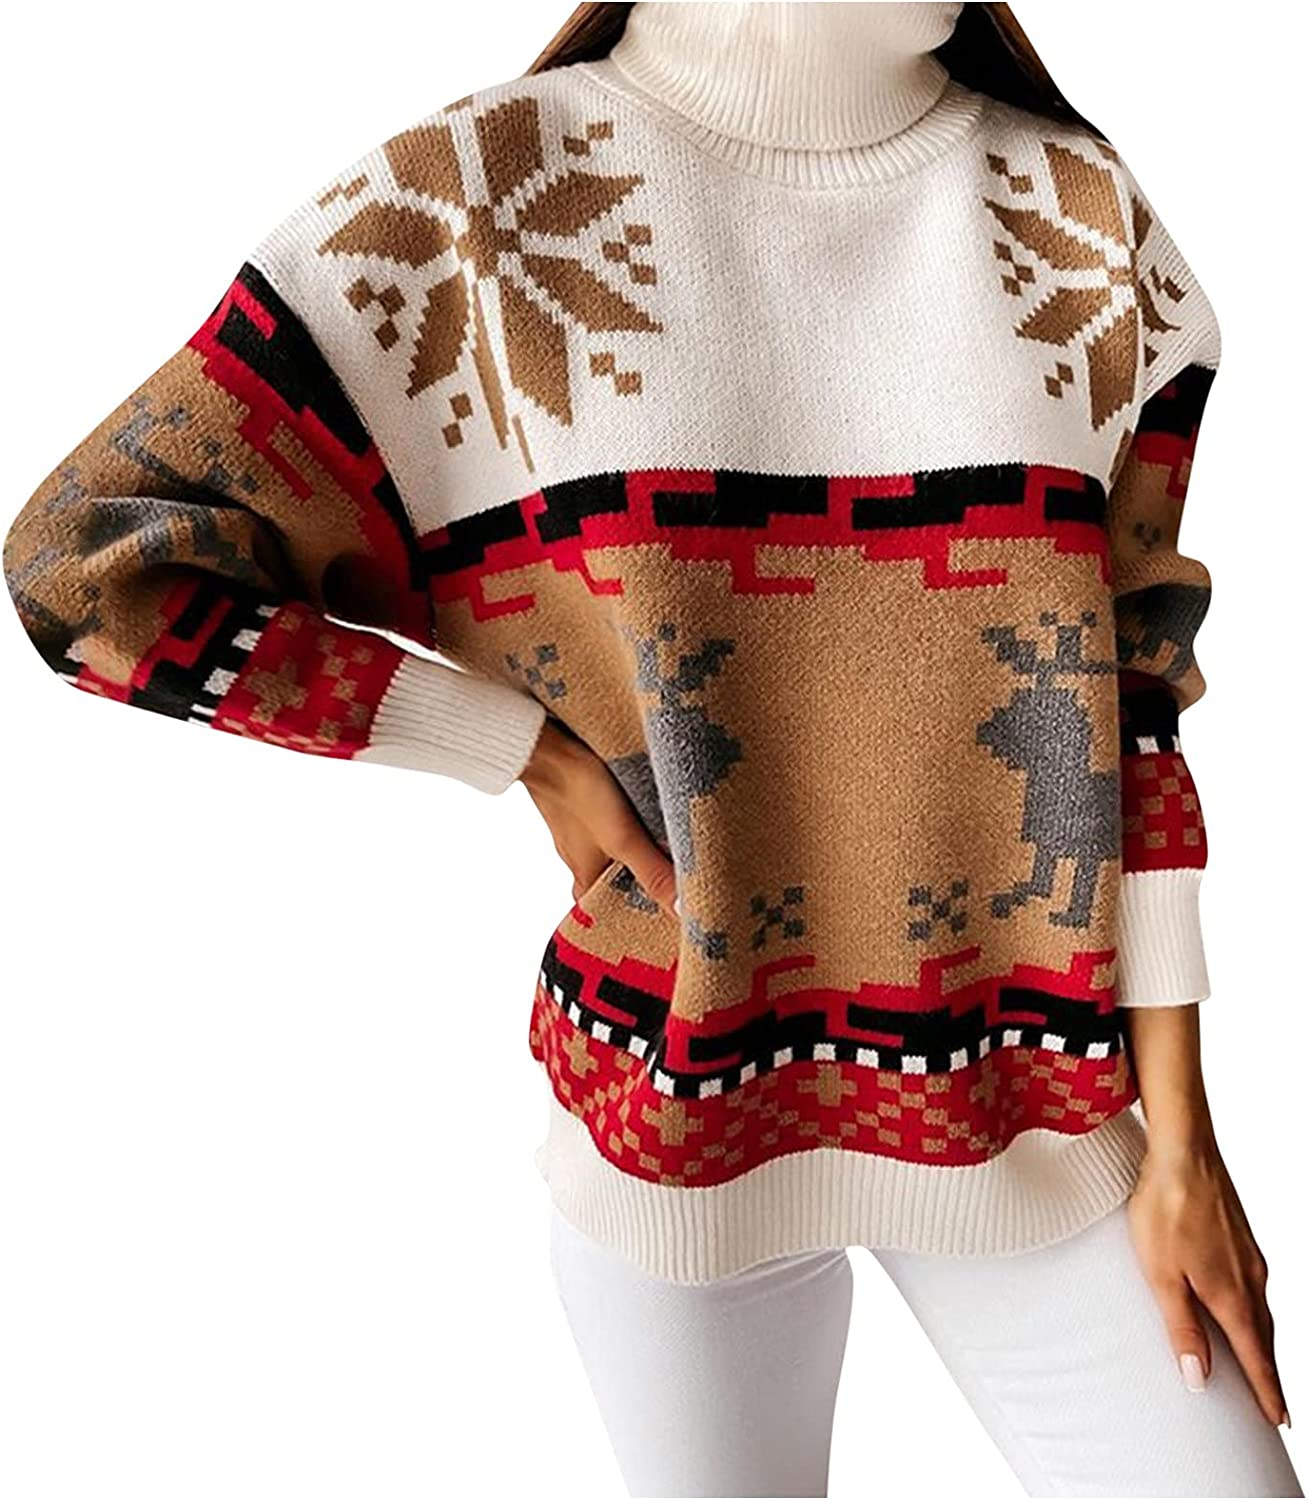 Christmas Sweater for Women Loose Elk Print Vintage Crewneck Pullover Comfy Casual Long Sleeve Fall Winter Blouse